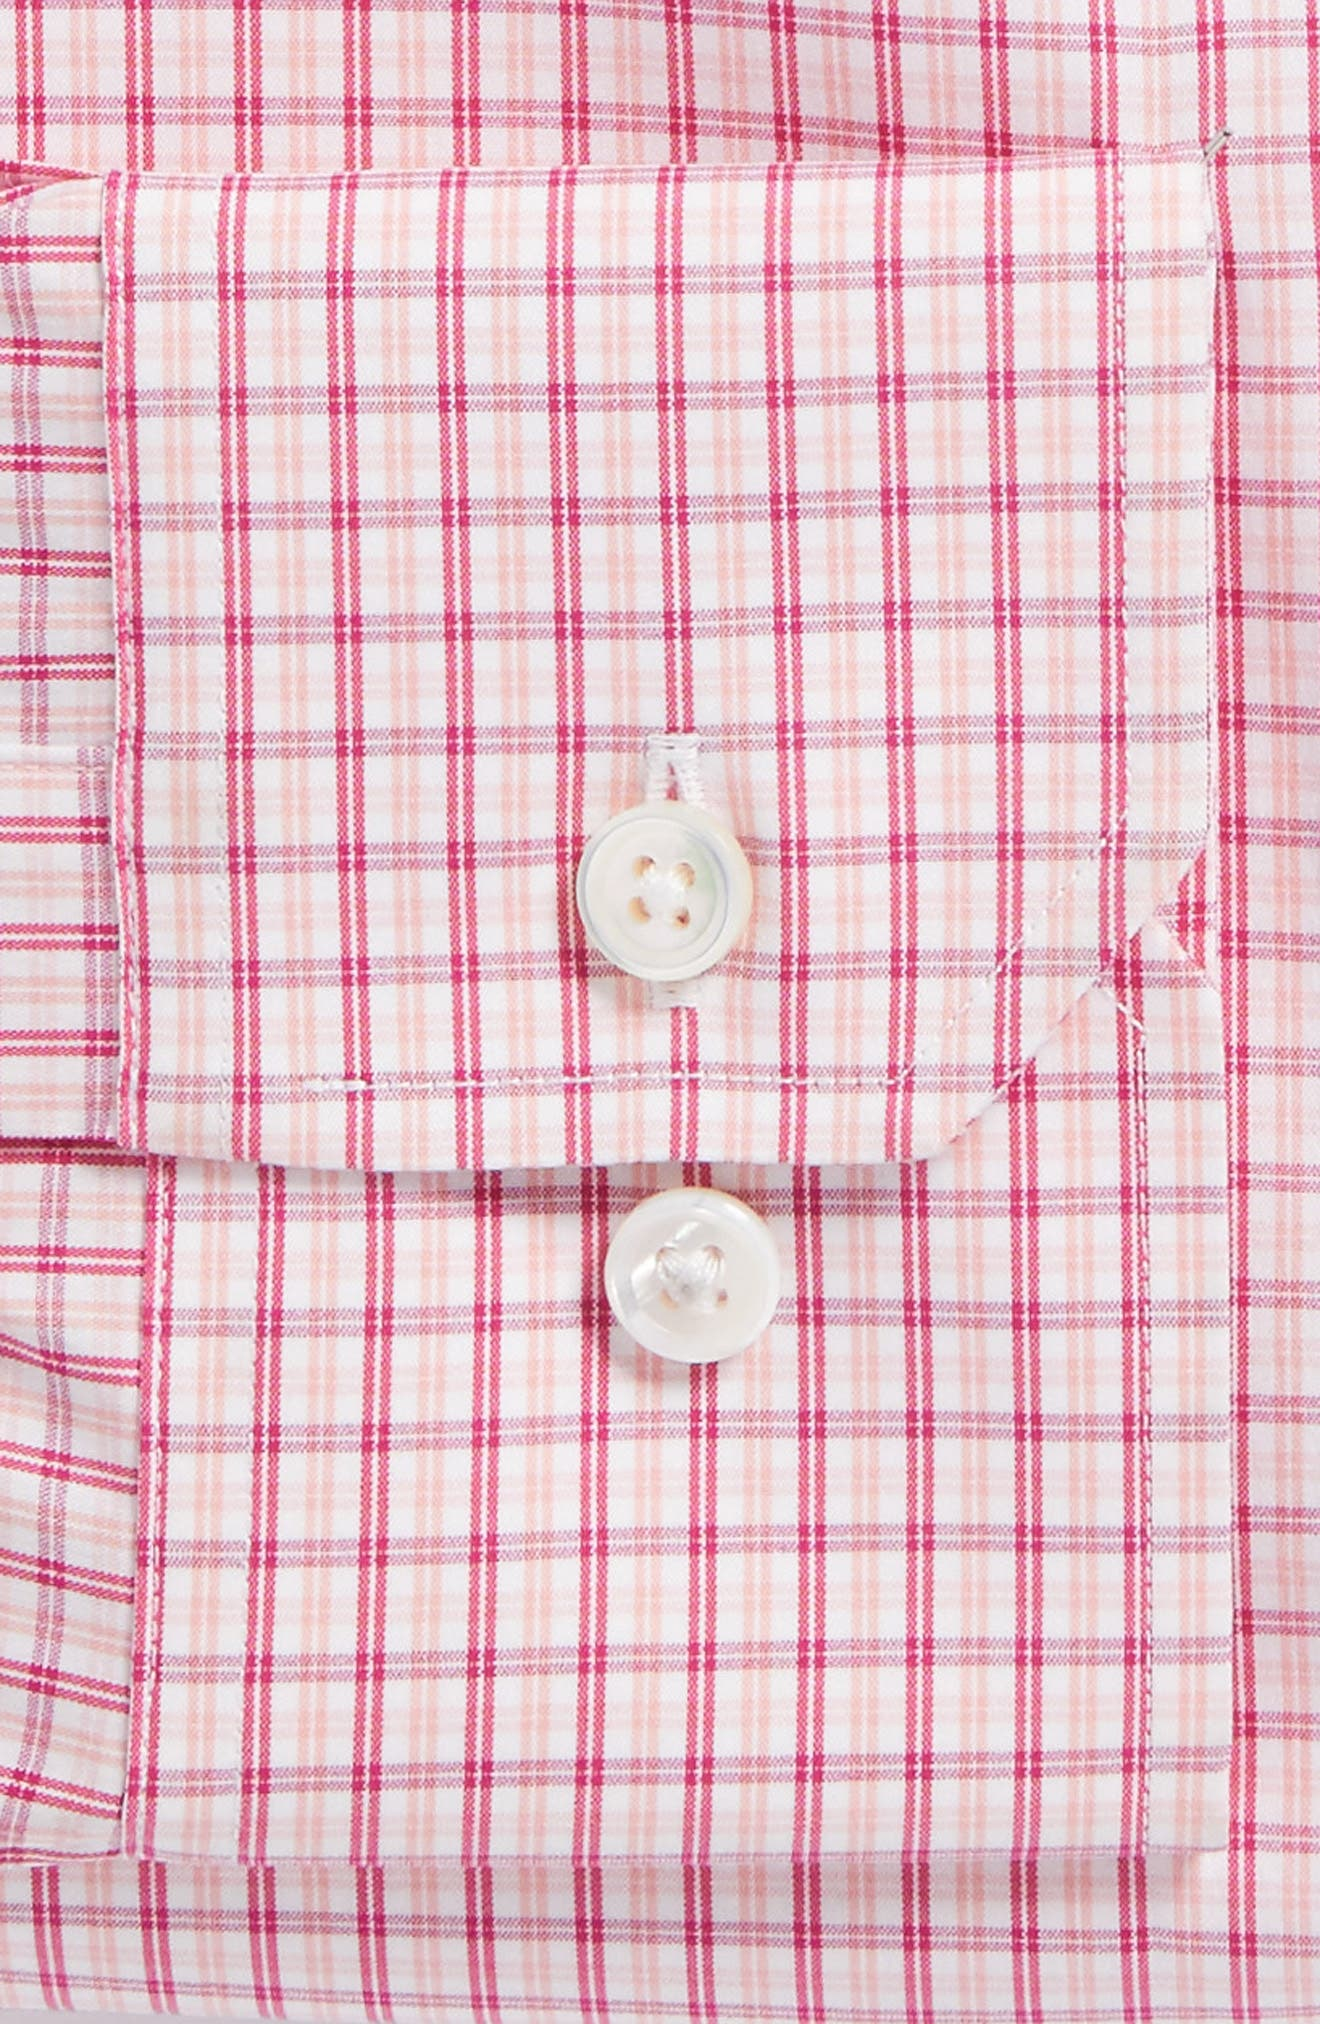 Jetsetter Slim Fit Stretch Check Dress Shirt,                             Alternate thumbnail 5, color,                             Pink Peacock